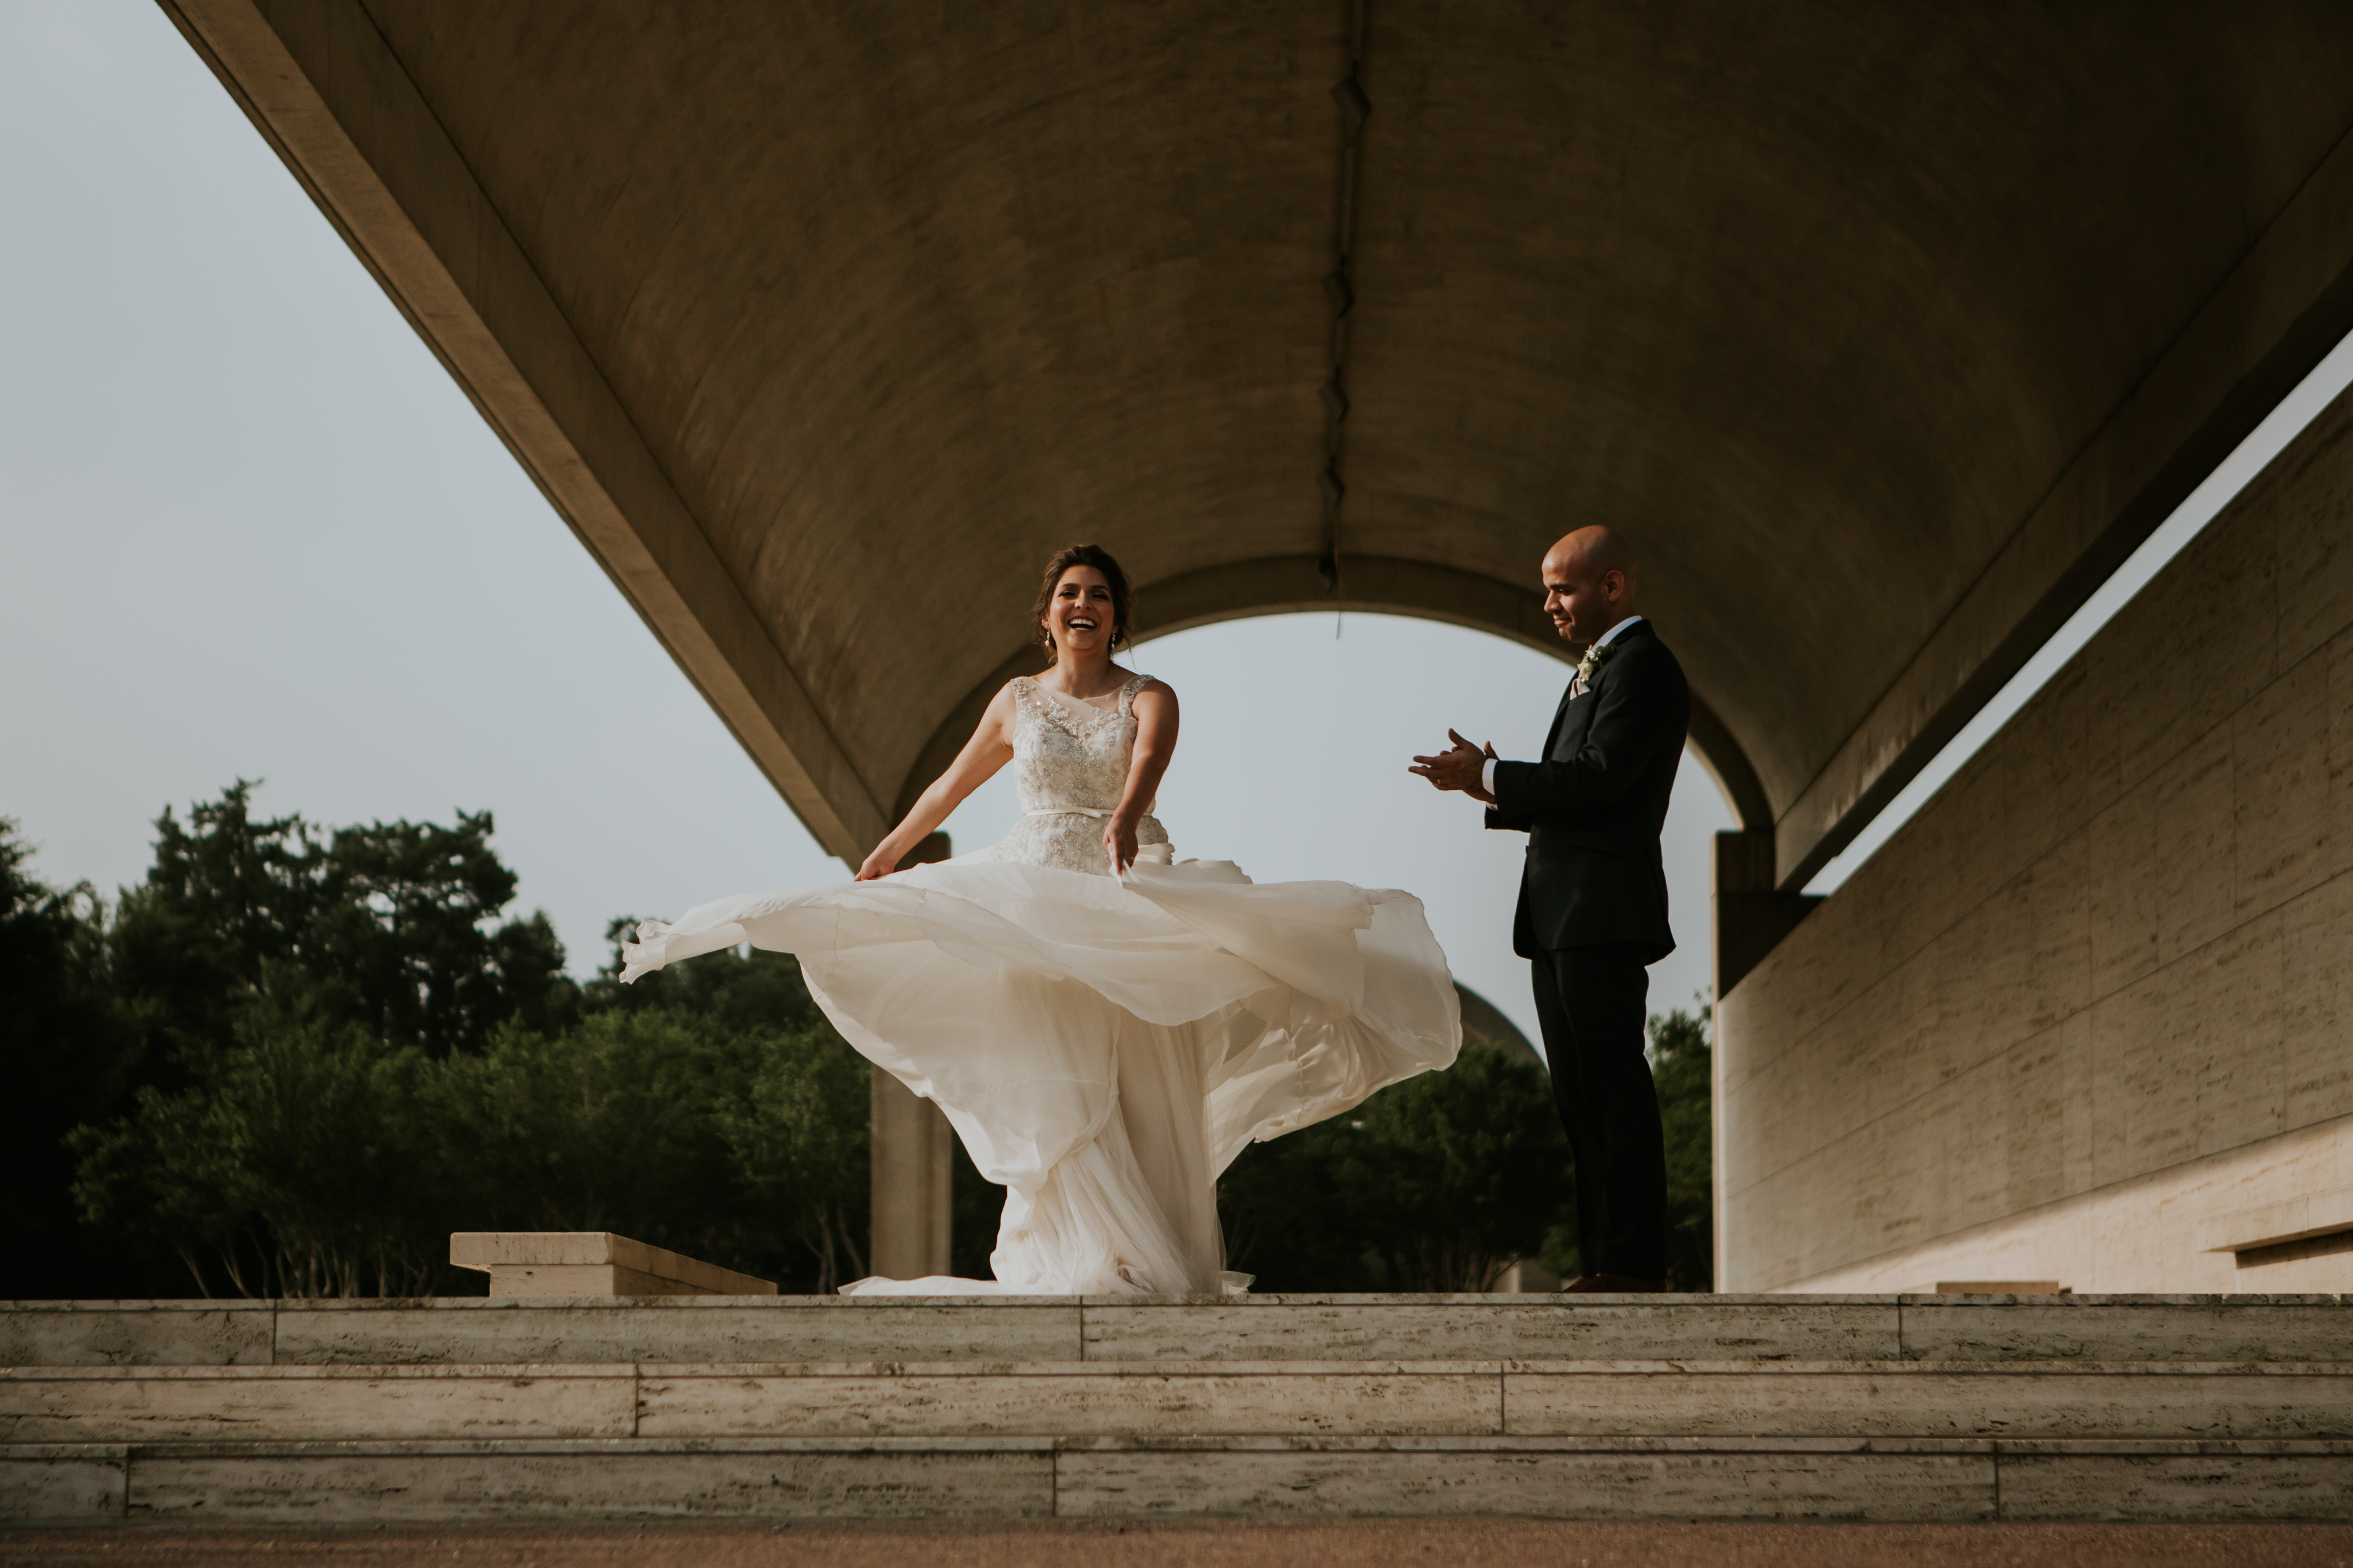 Twirling in Soft Silk Chiffon // A Modern Chic Mansion Wedding by Amare Couture